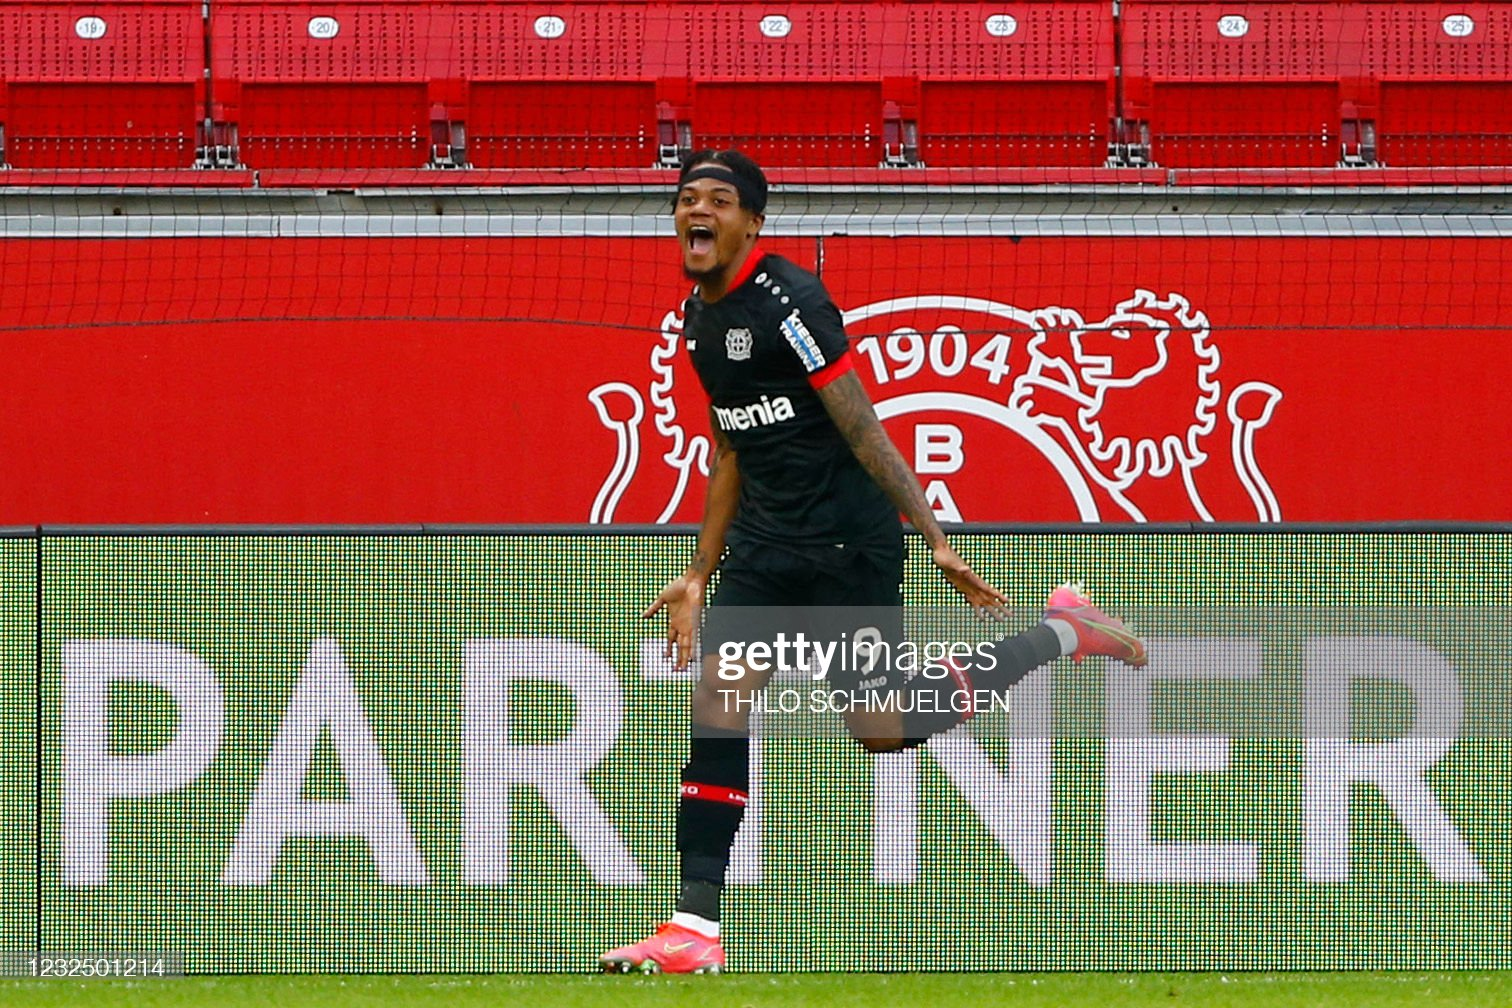 Leon Bailey could be a bargain for English clubs this summer